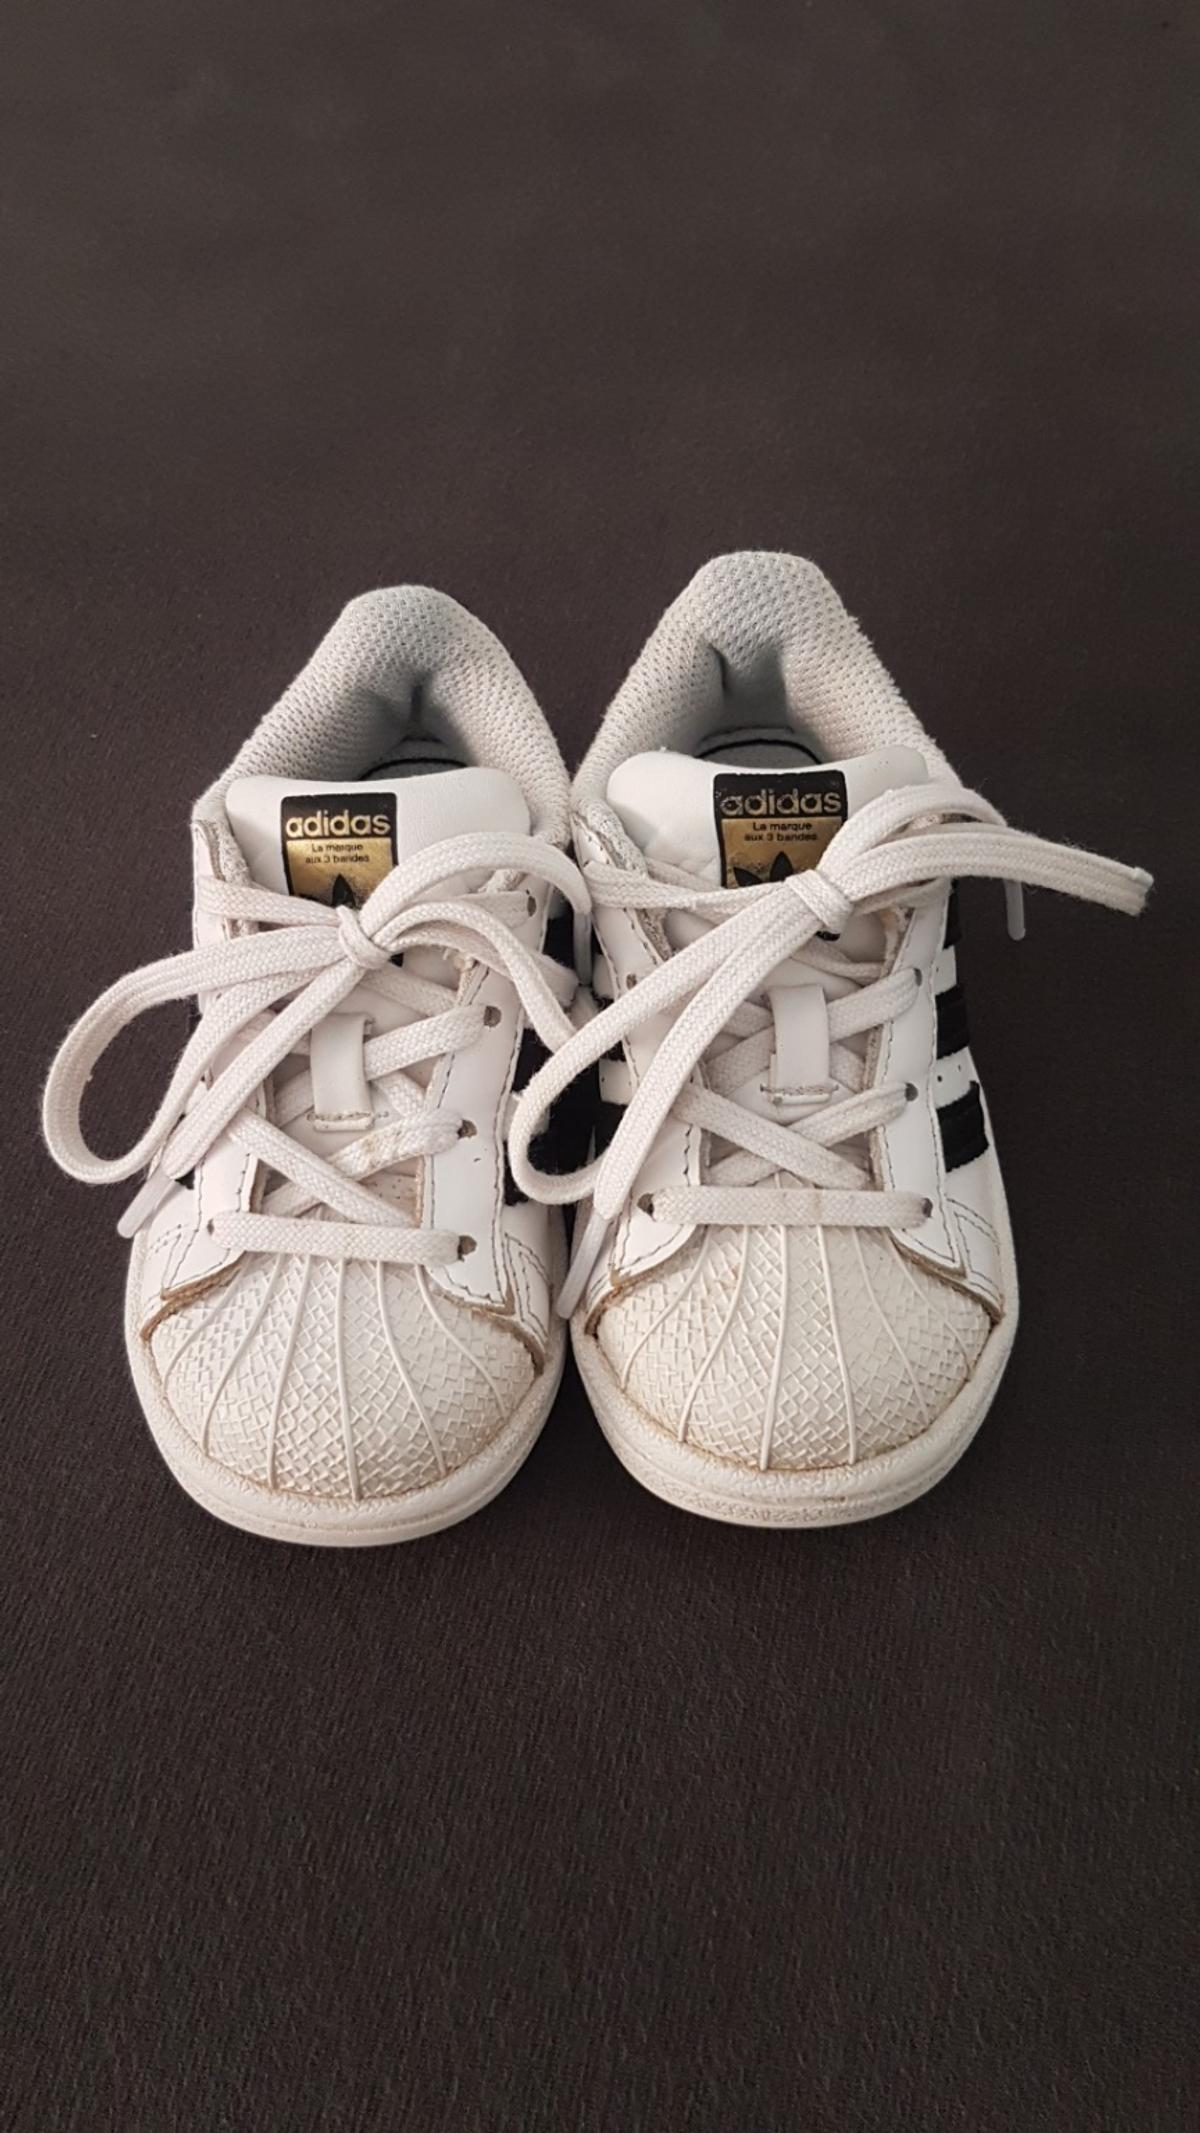 cool white adidas sneakers